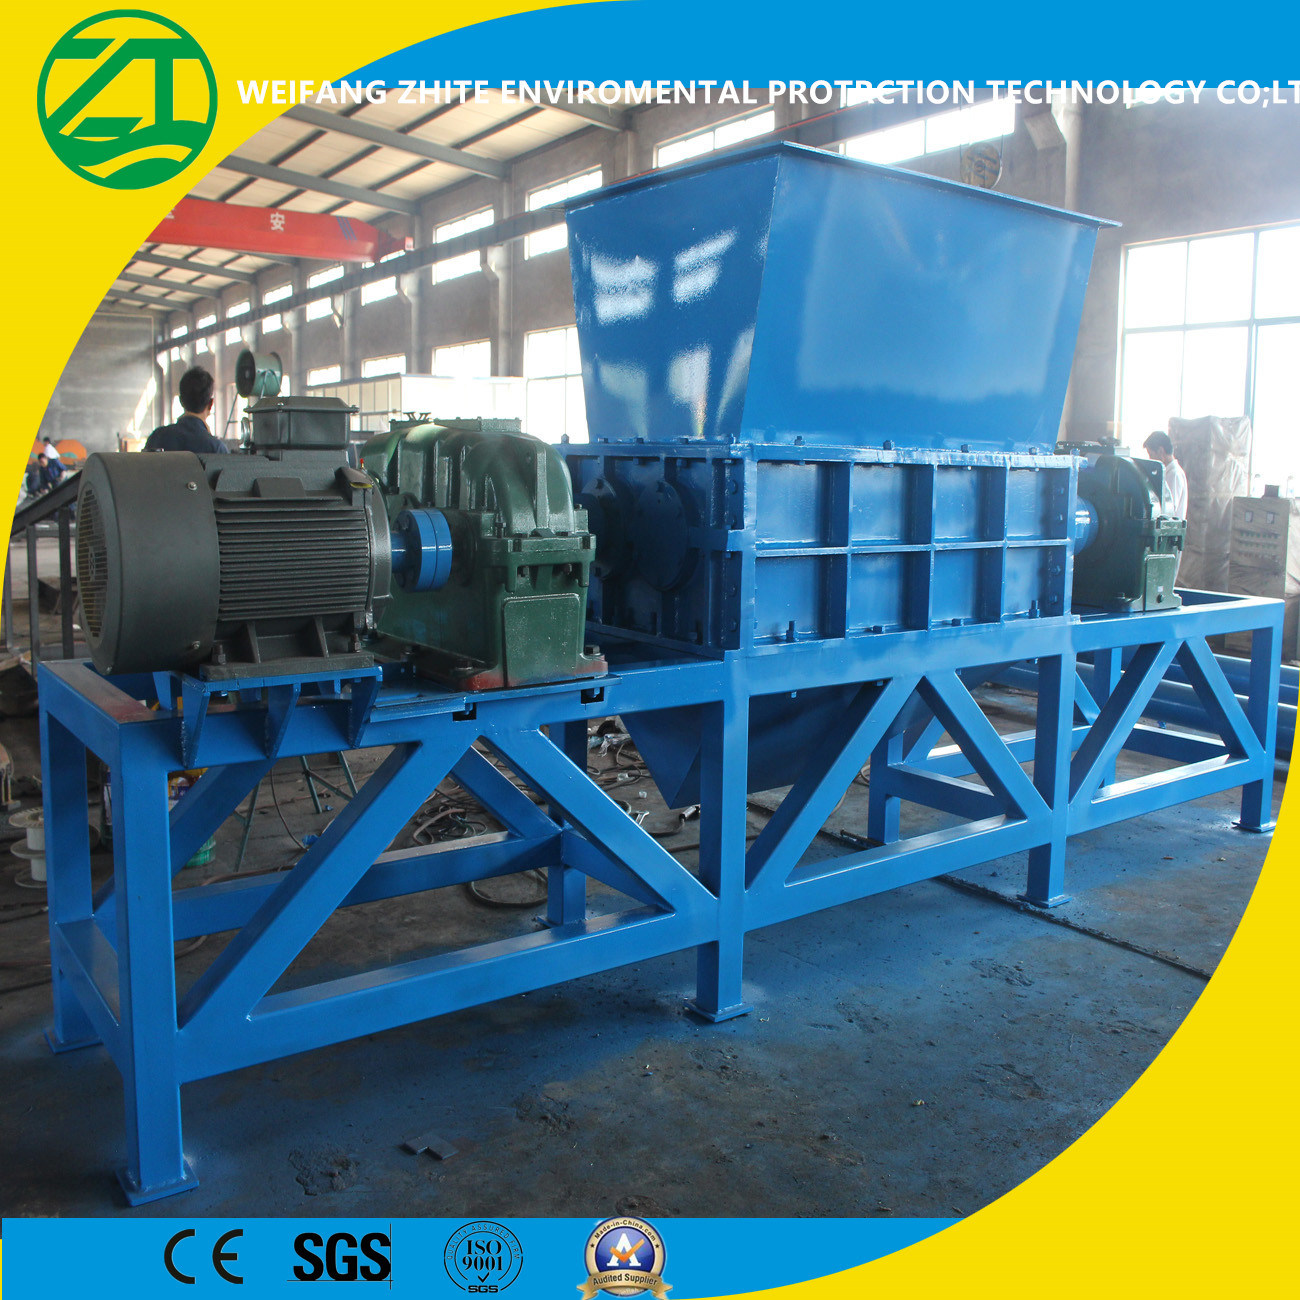 Ce Approved High Quality Zt-1900 Four Shaft Shredder